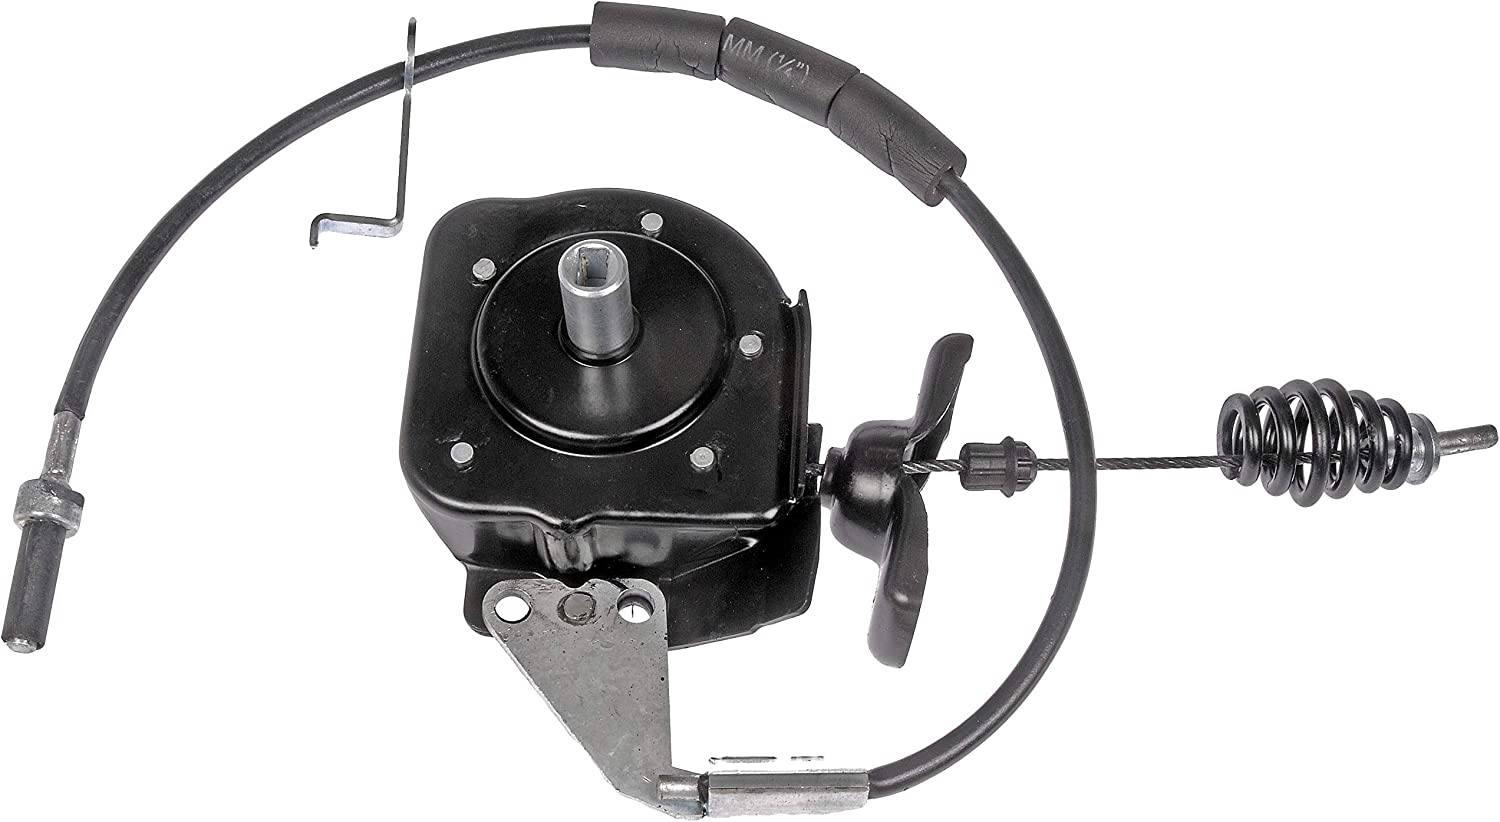 APDTY 035623 Spare Tire Cable Hoist Crank Holder Assembly Fits 2005-2012 Ford Escape 2005-2011 Mercury Mariner Replaces Ford 9L8Z-1A131-B, 9L8Z1A131B